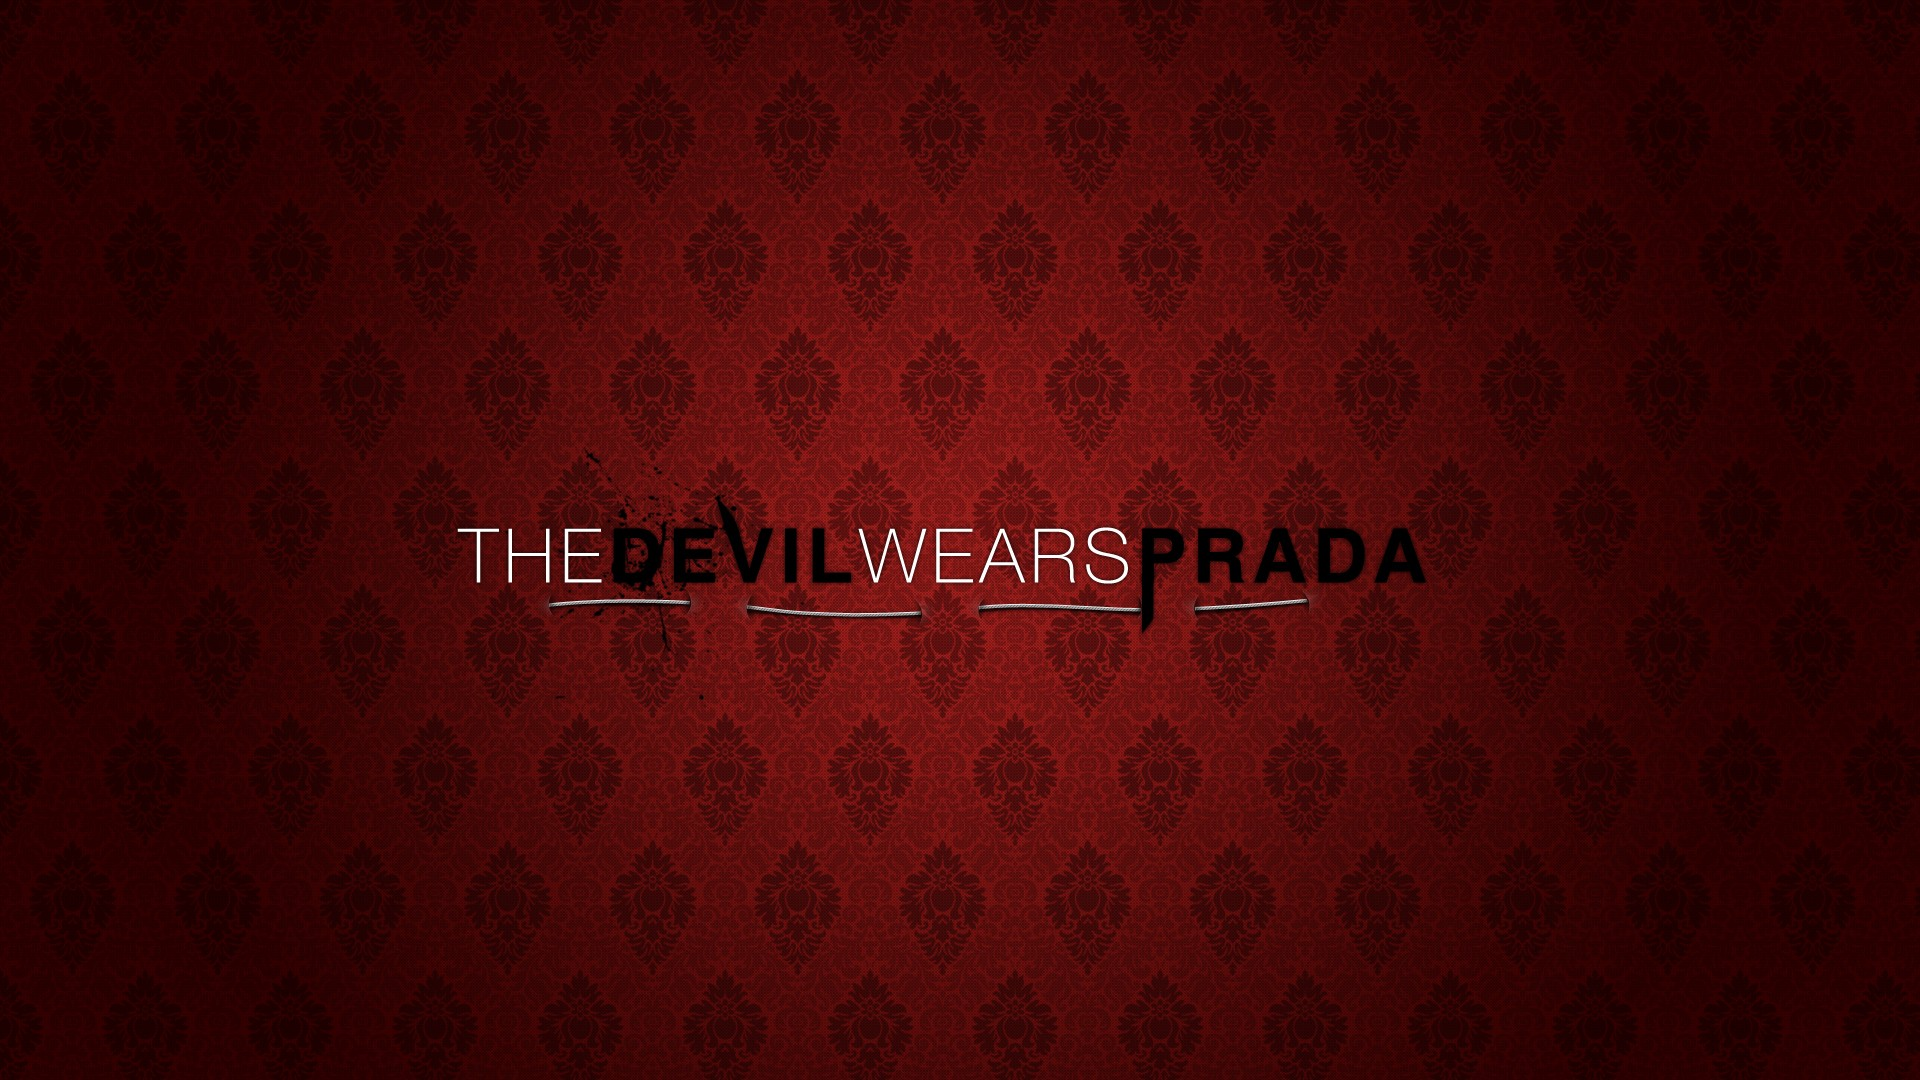 Background on the film, the Devil Wears Prada